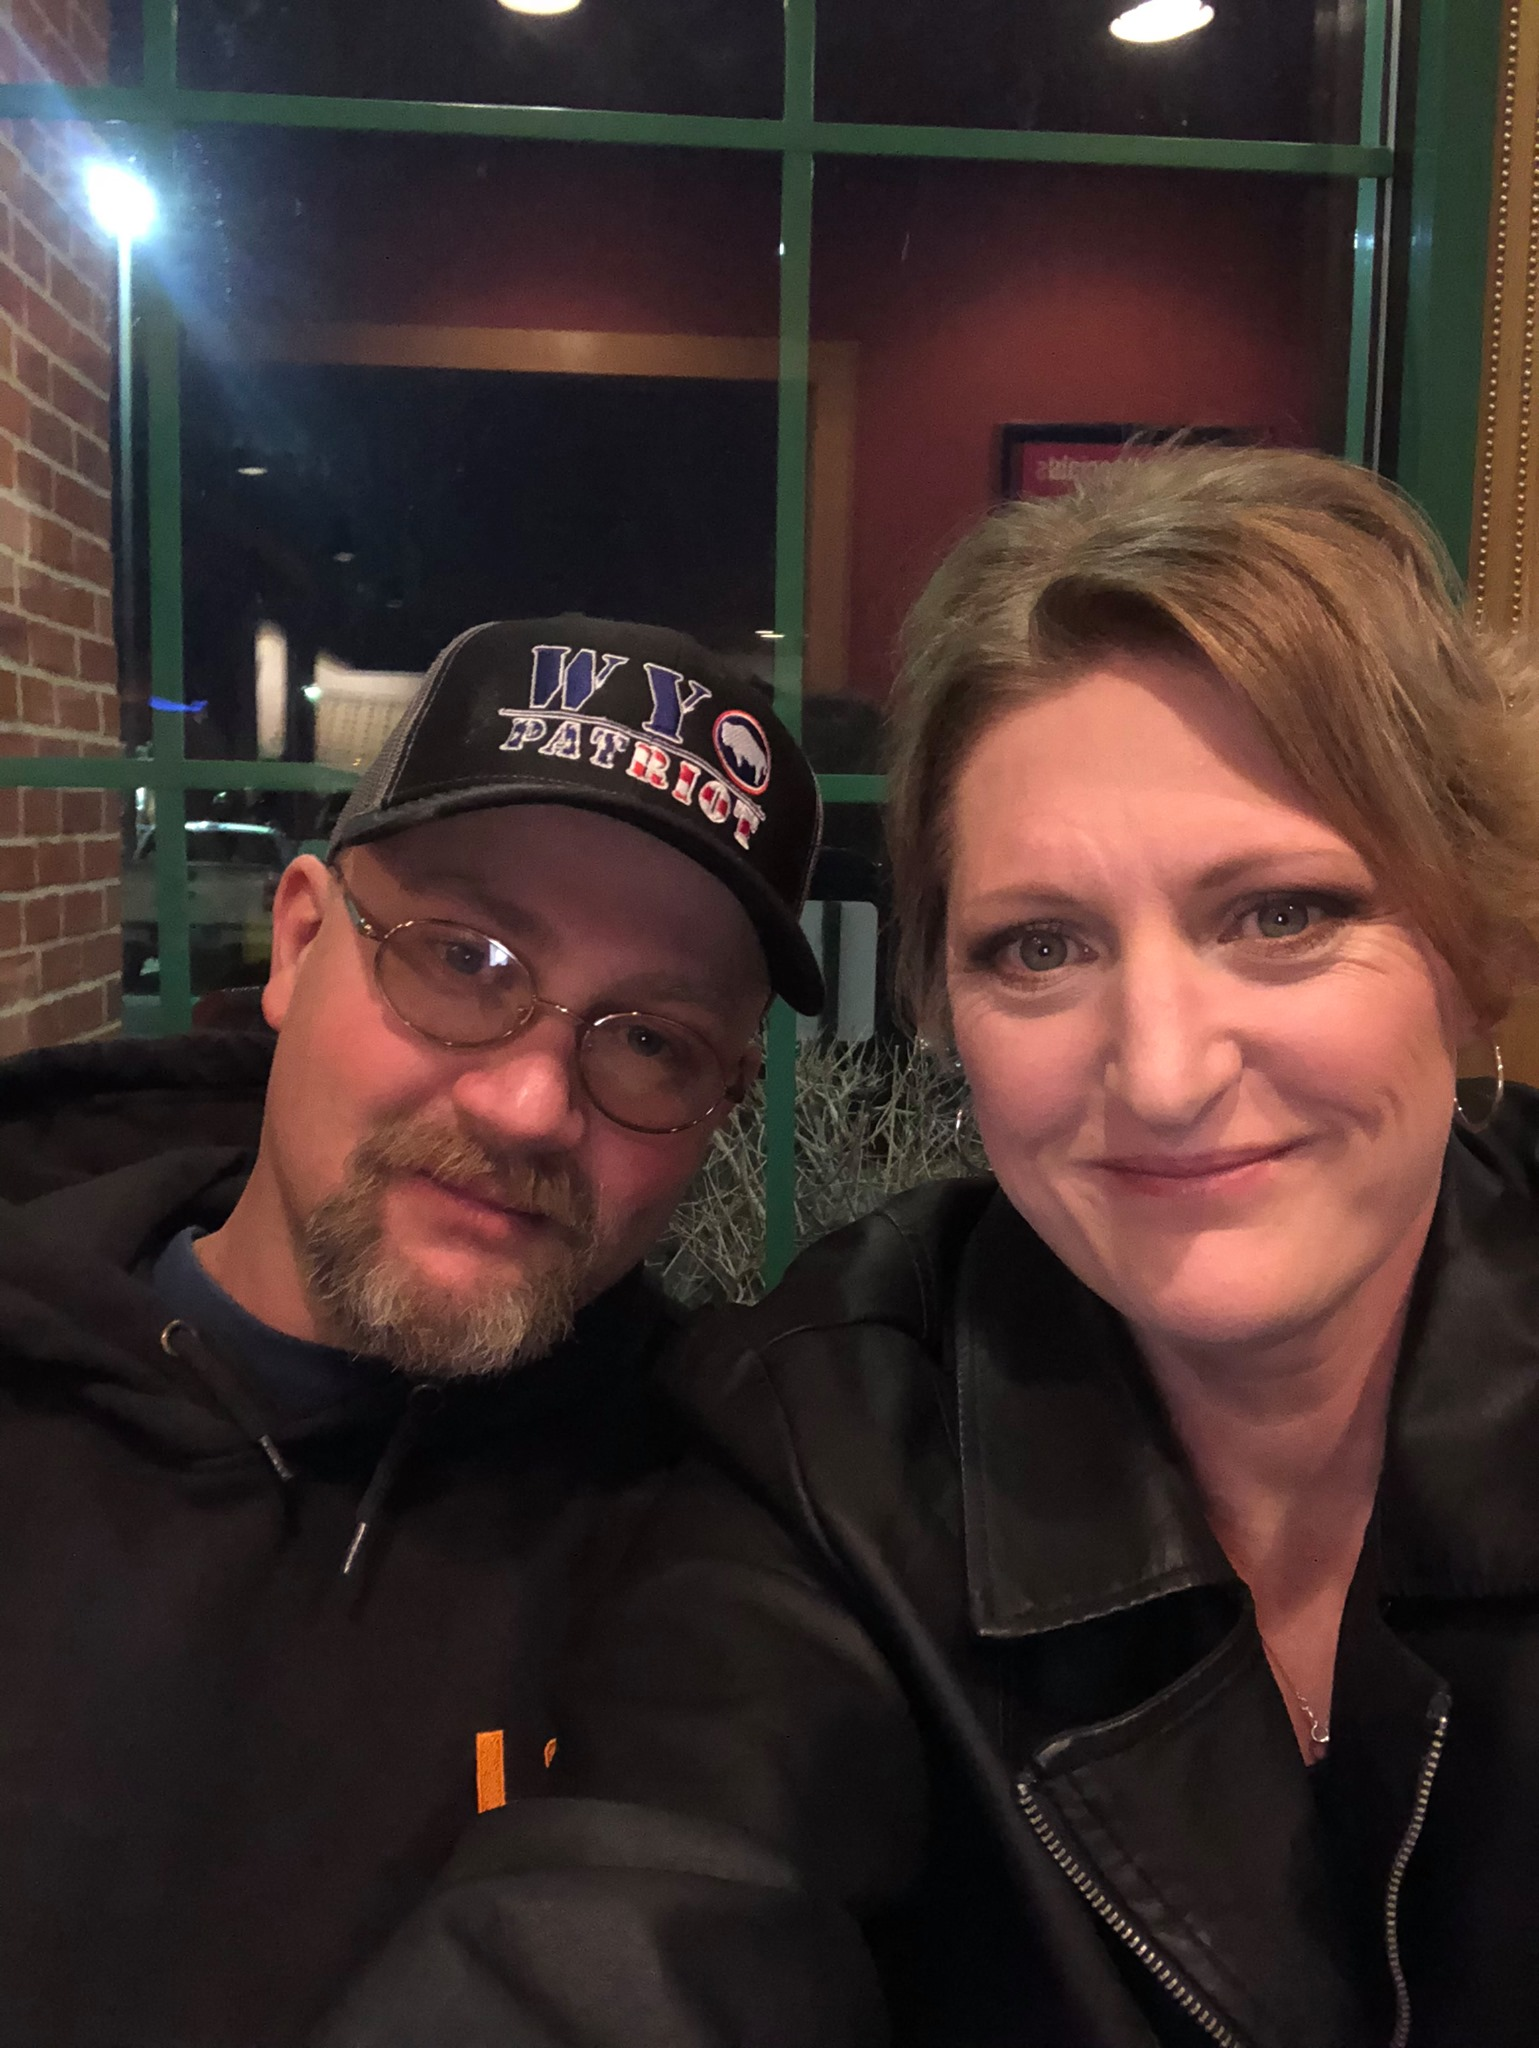 Courtney Finley met her husband in Cheyenne in August 1997. They have been married for 20 years.